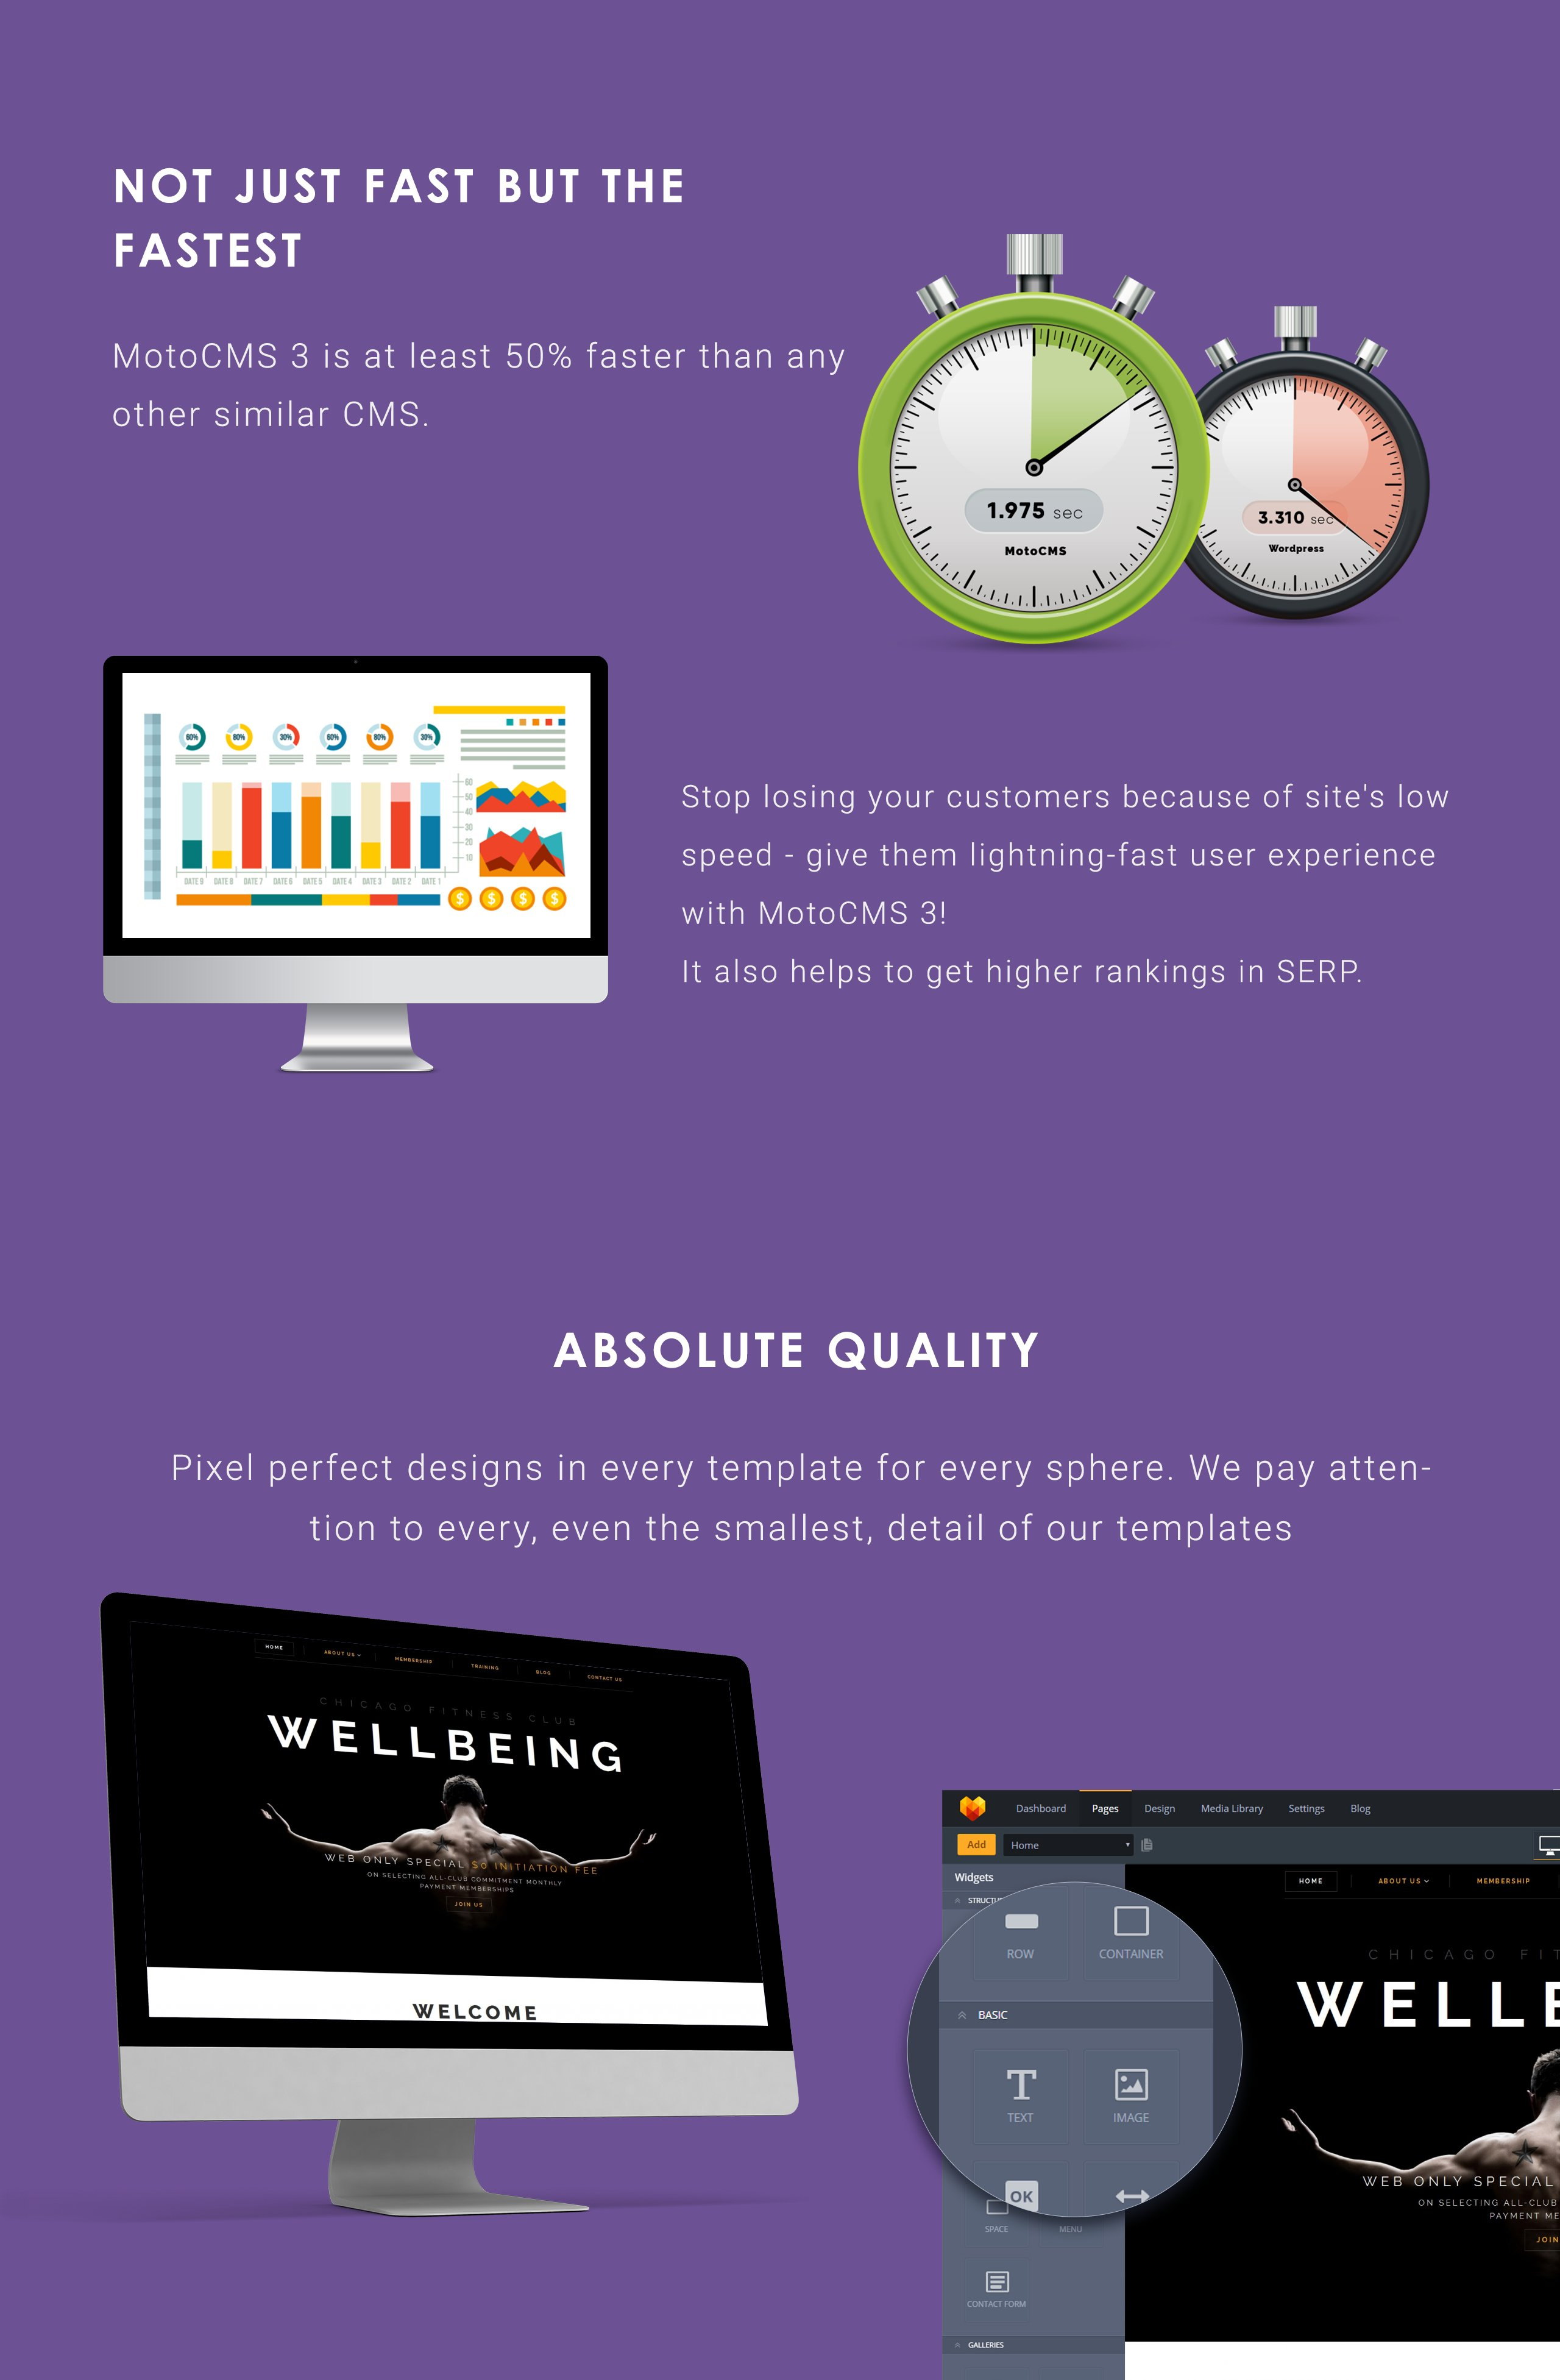 Wellbeing - Fitness Club Moto CMS 3 Template